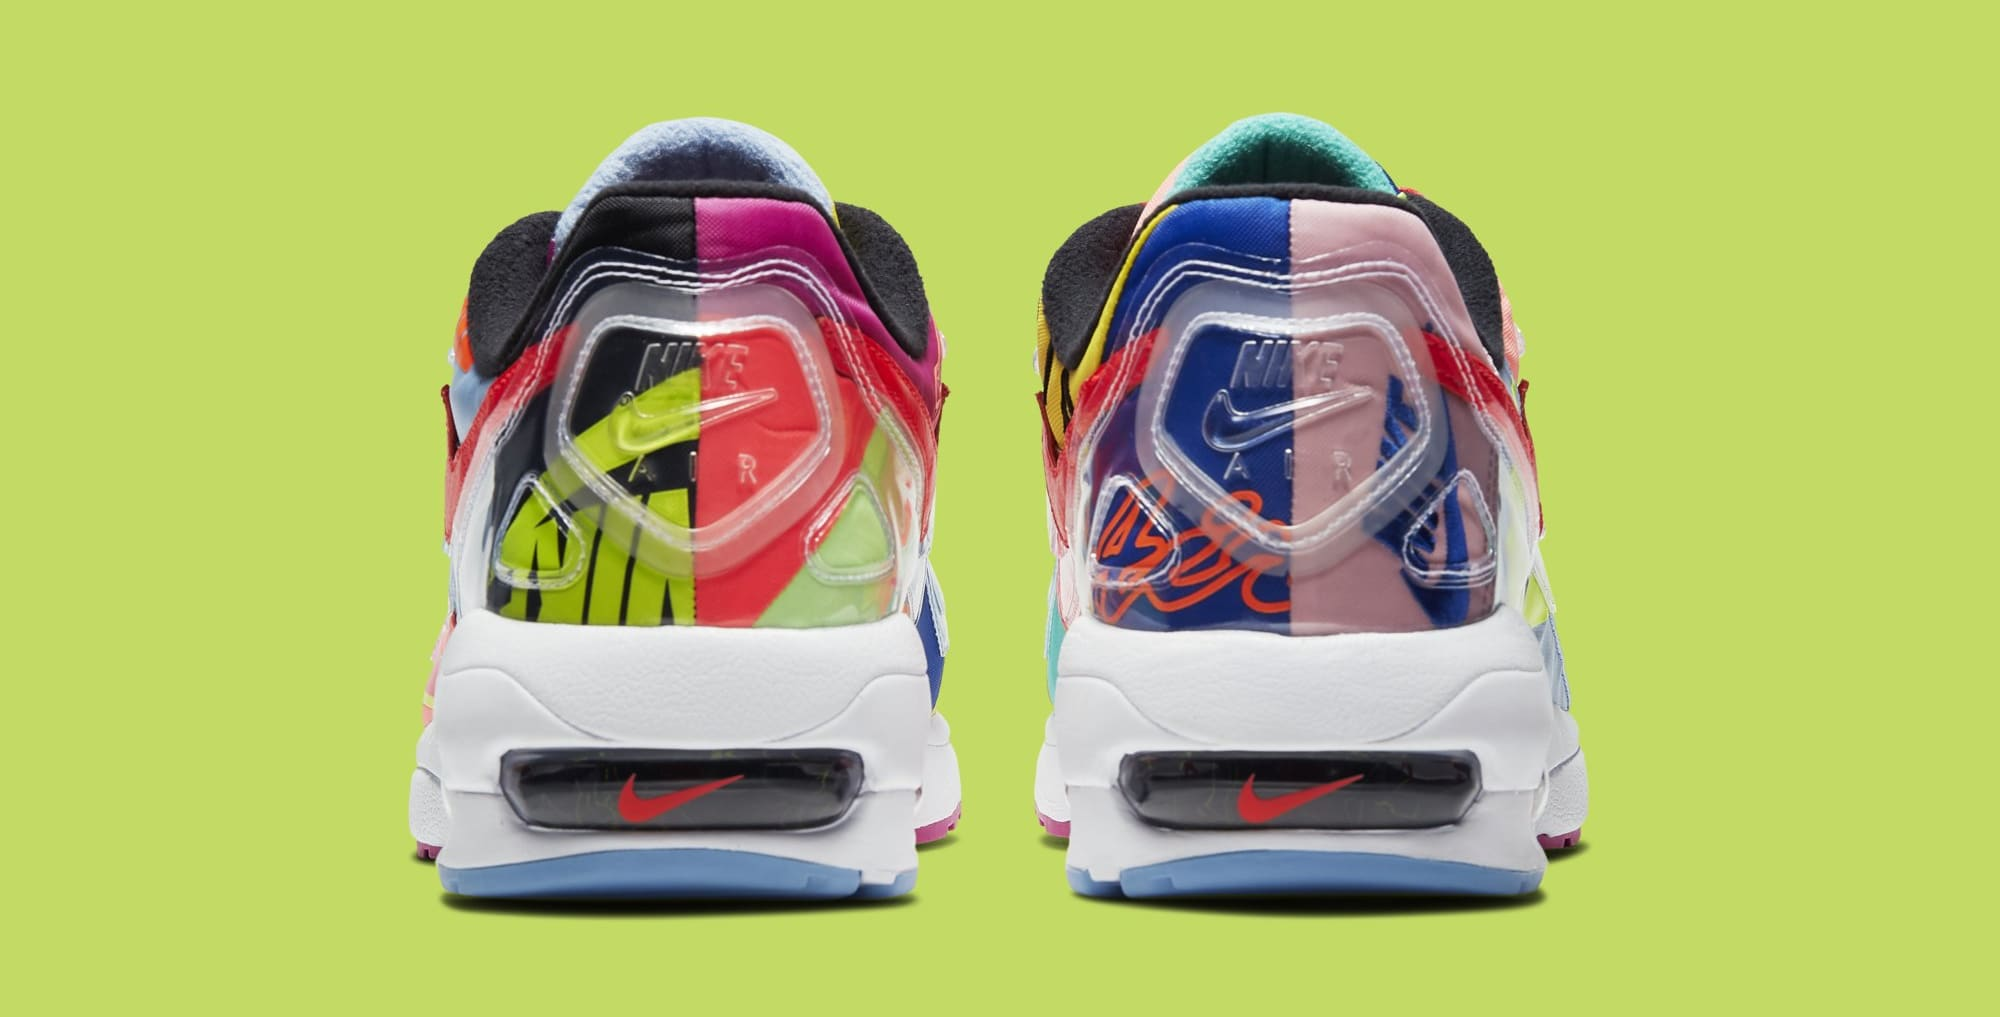 Atmos x Nike Air Max2 Light BV7406-001 (Heel)